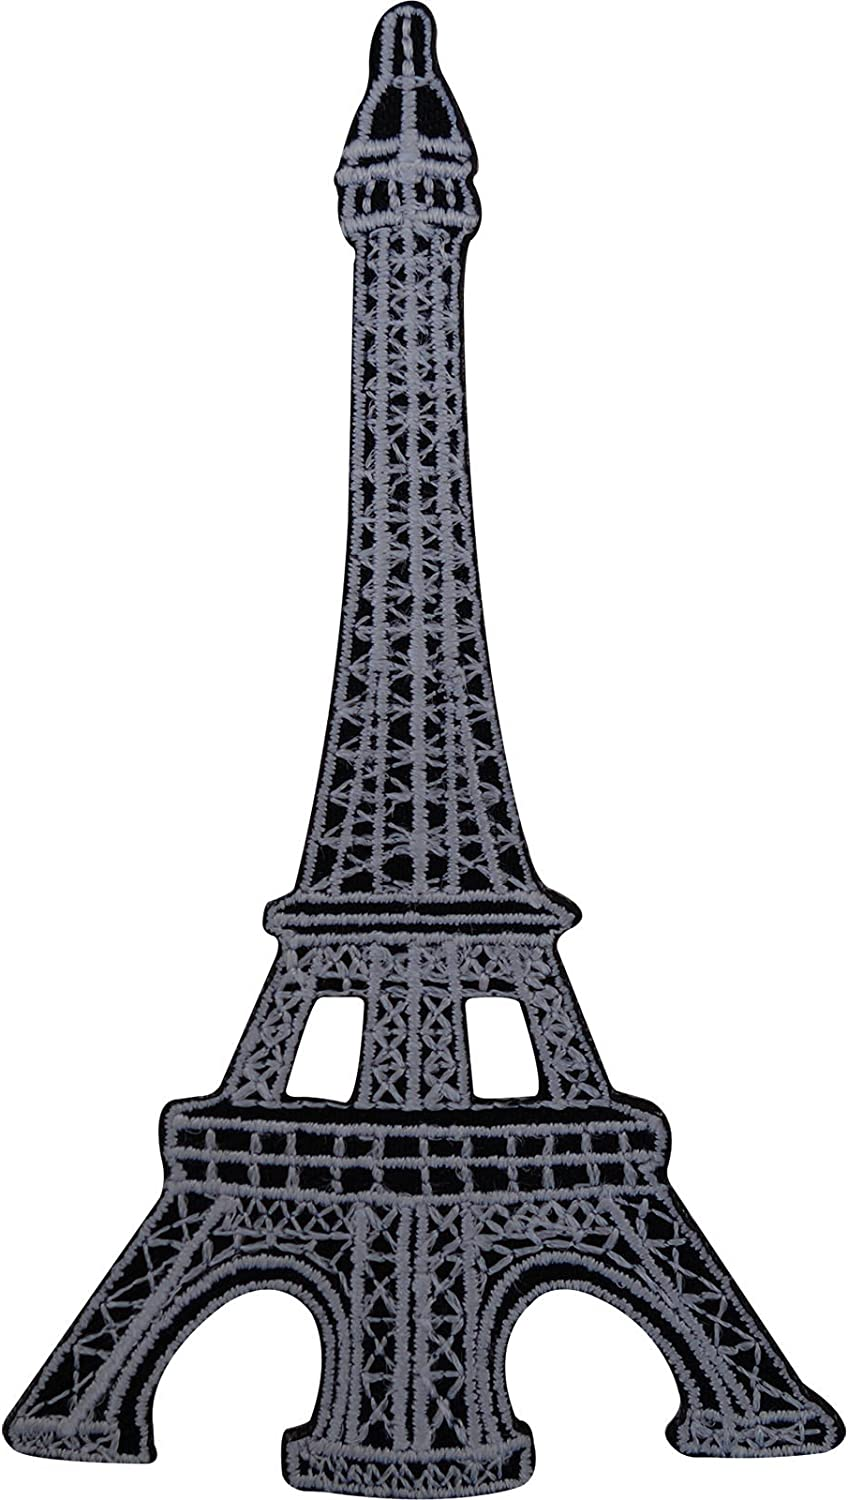 Sew On French Paris France Souvenir Eiffel Tower Patch Embroidered Badge Iron